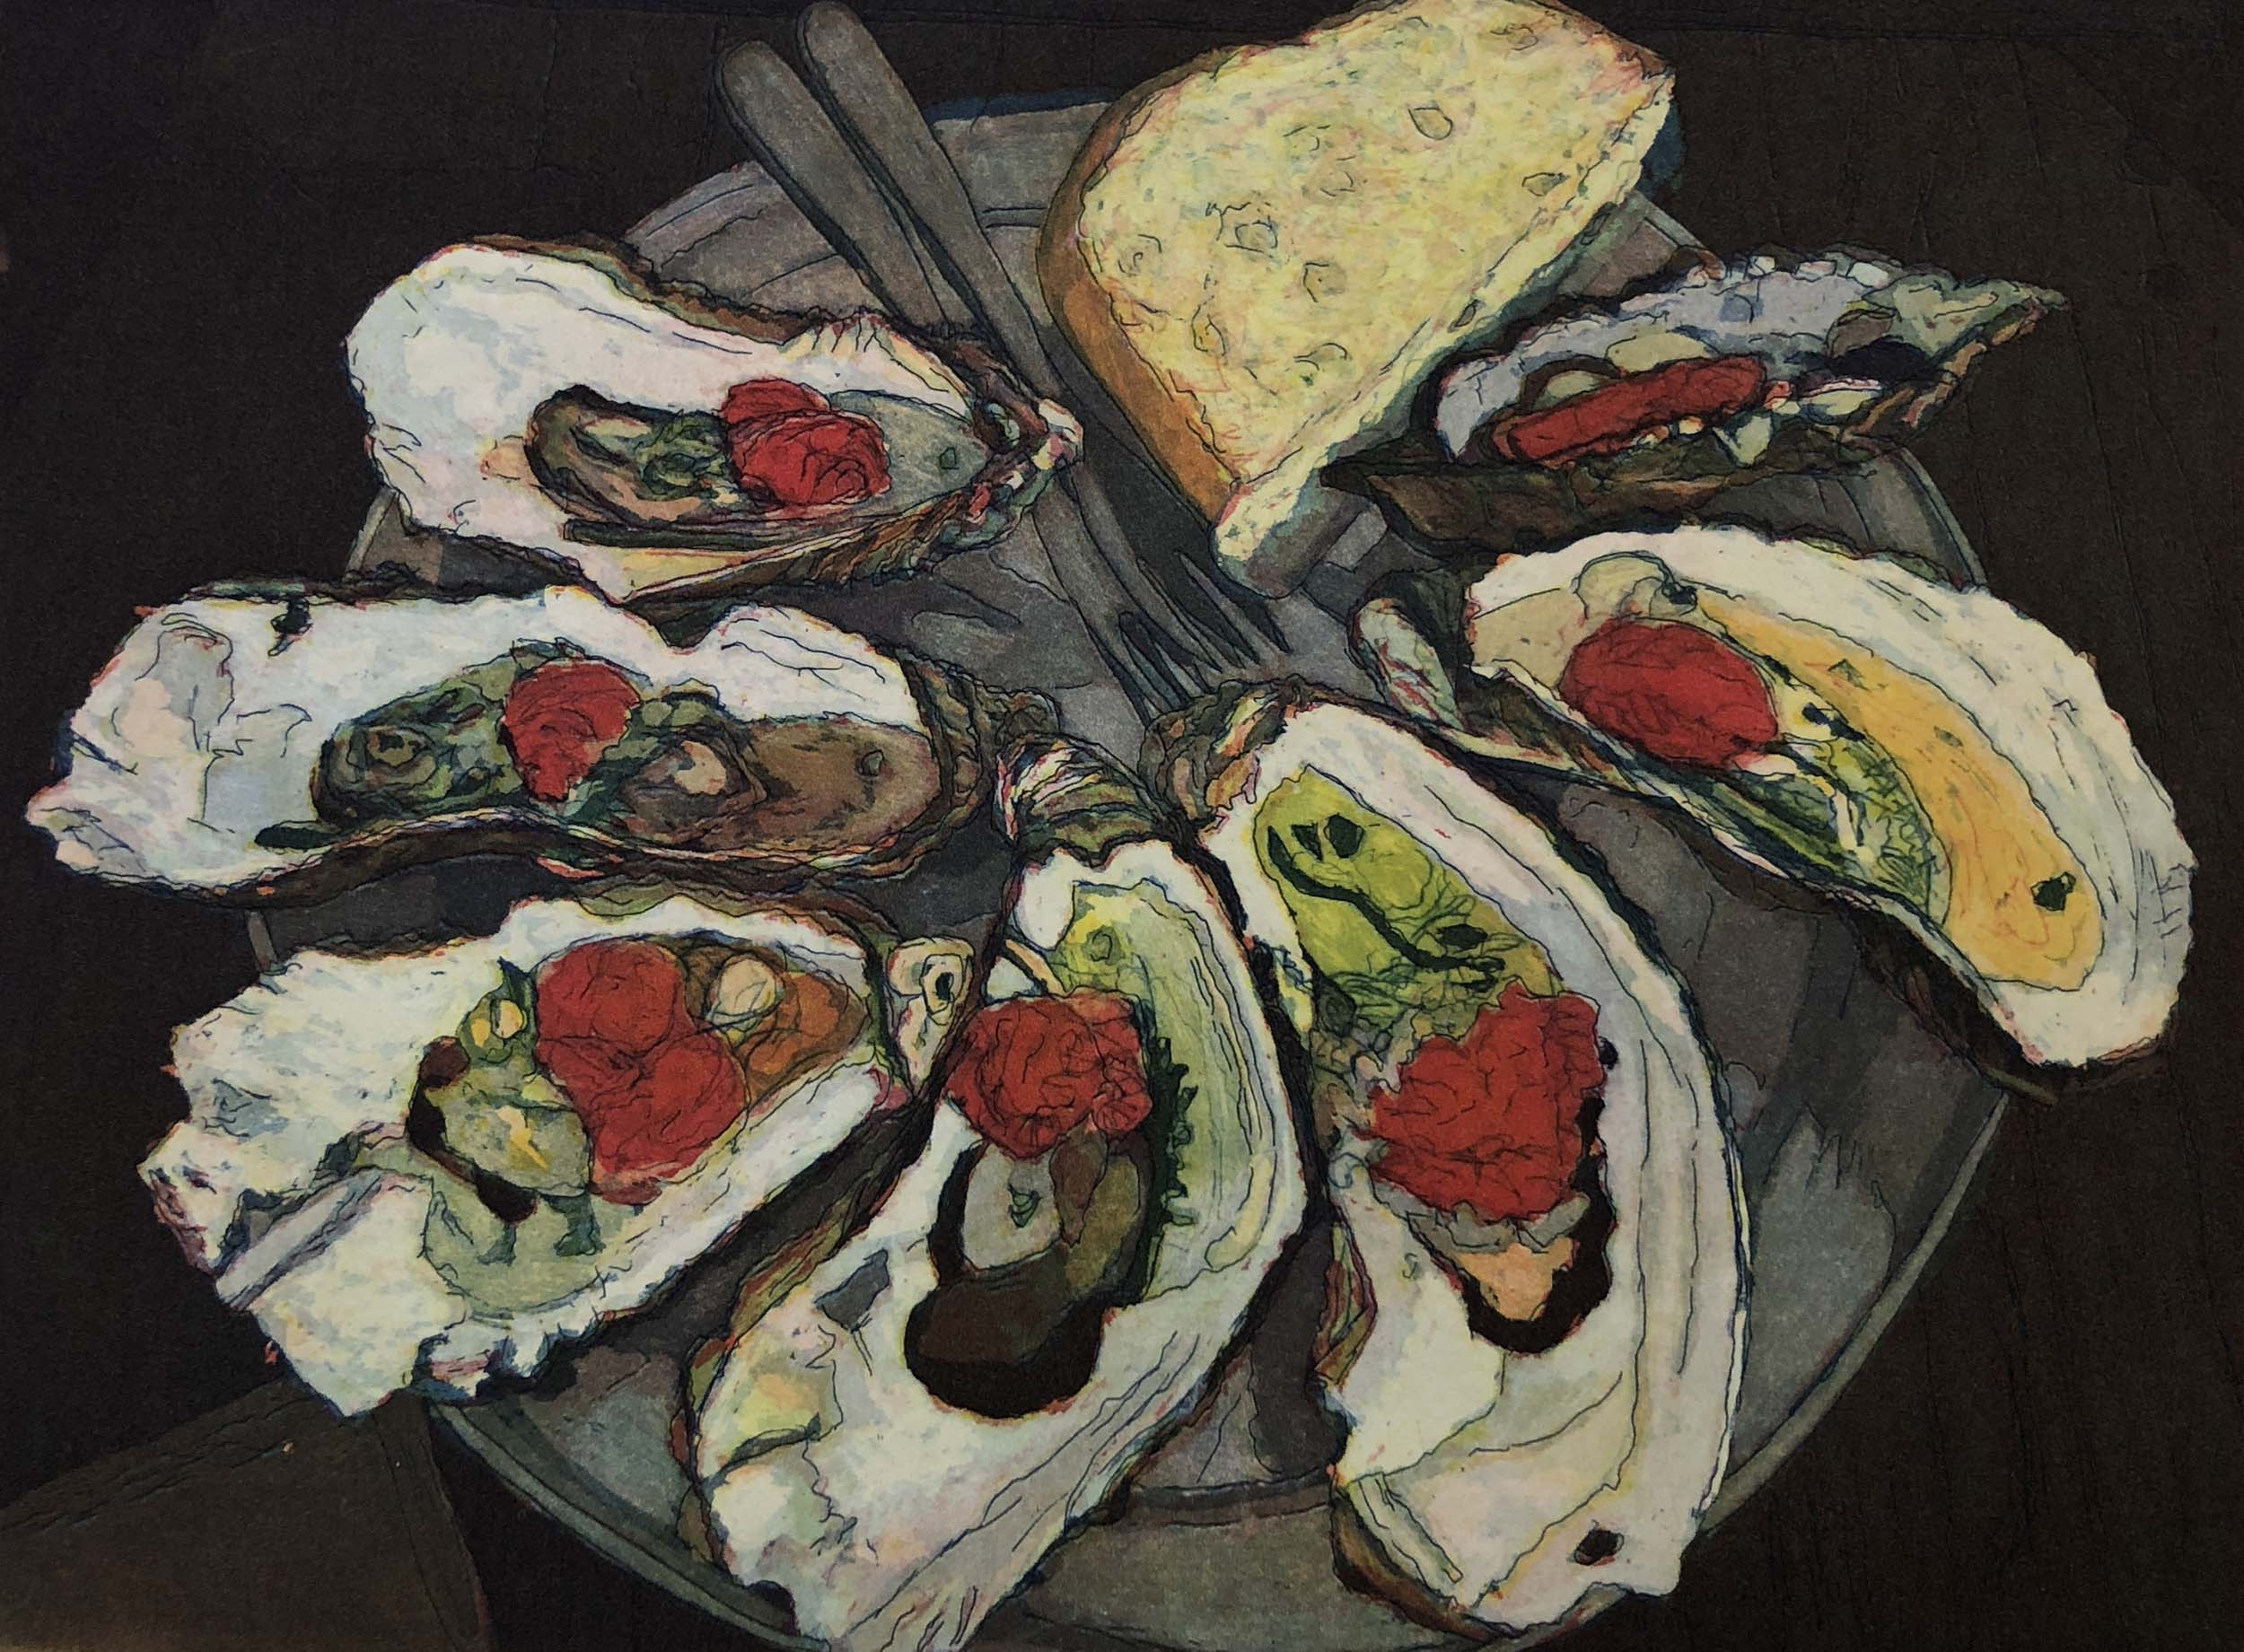 Bright Moments II: Oysters